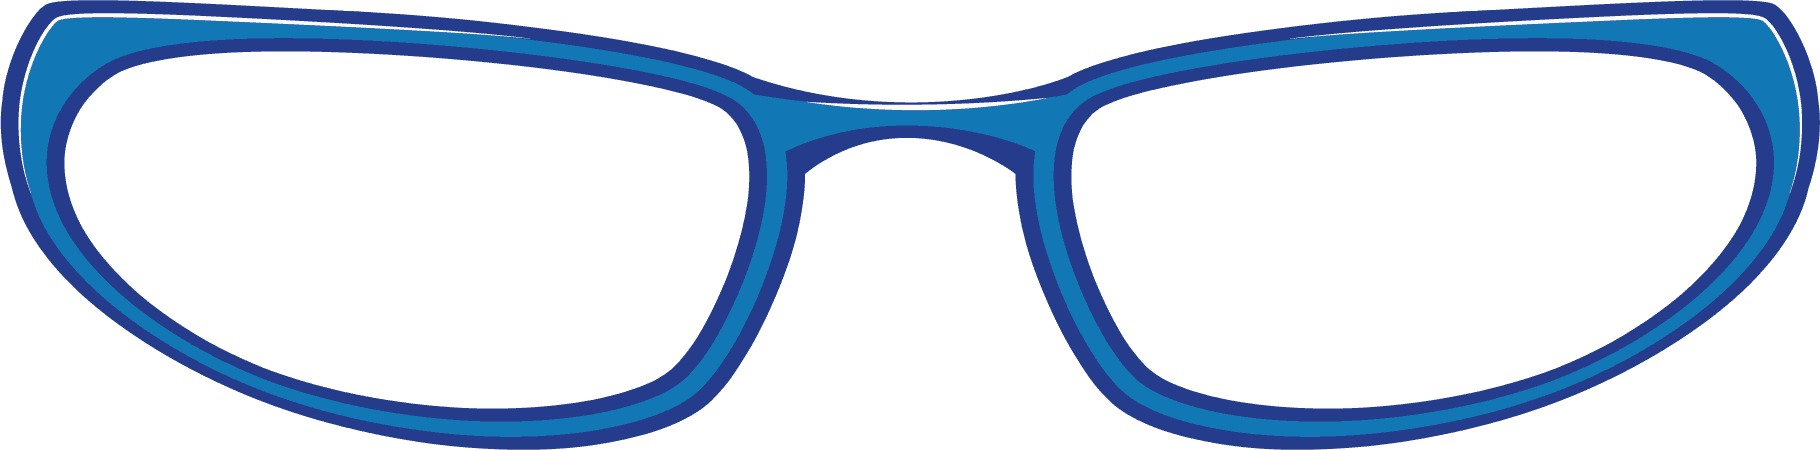 Eyeglasses clipart free images 4